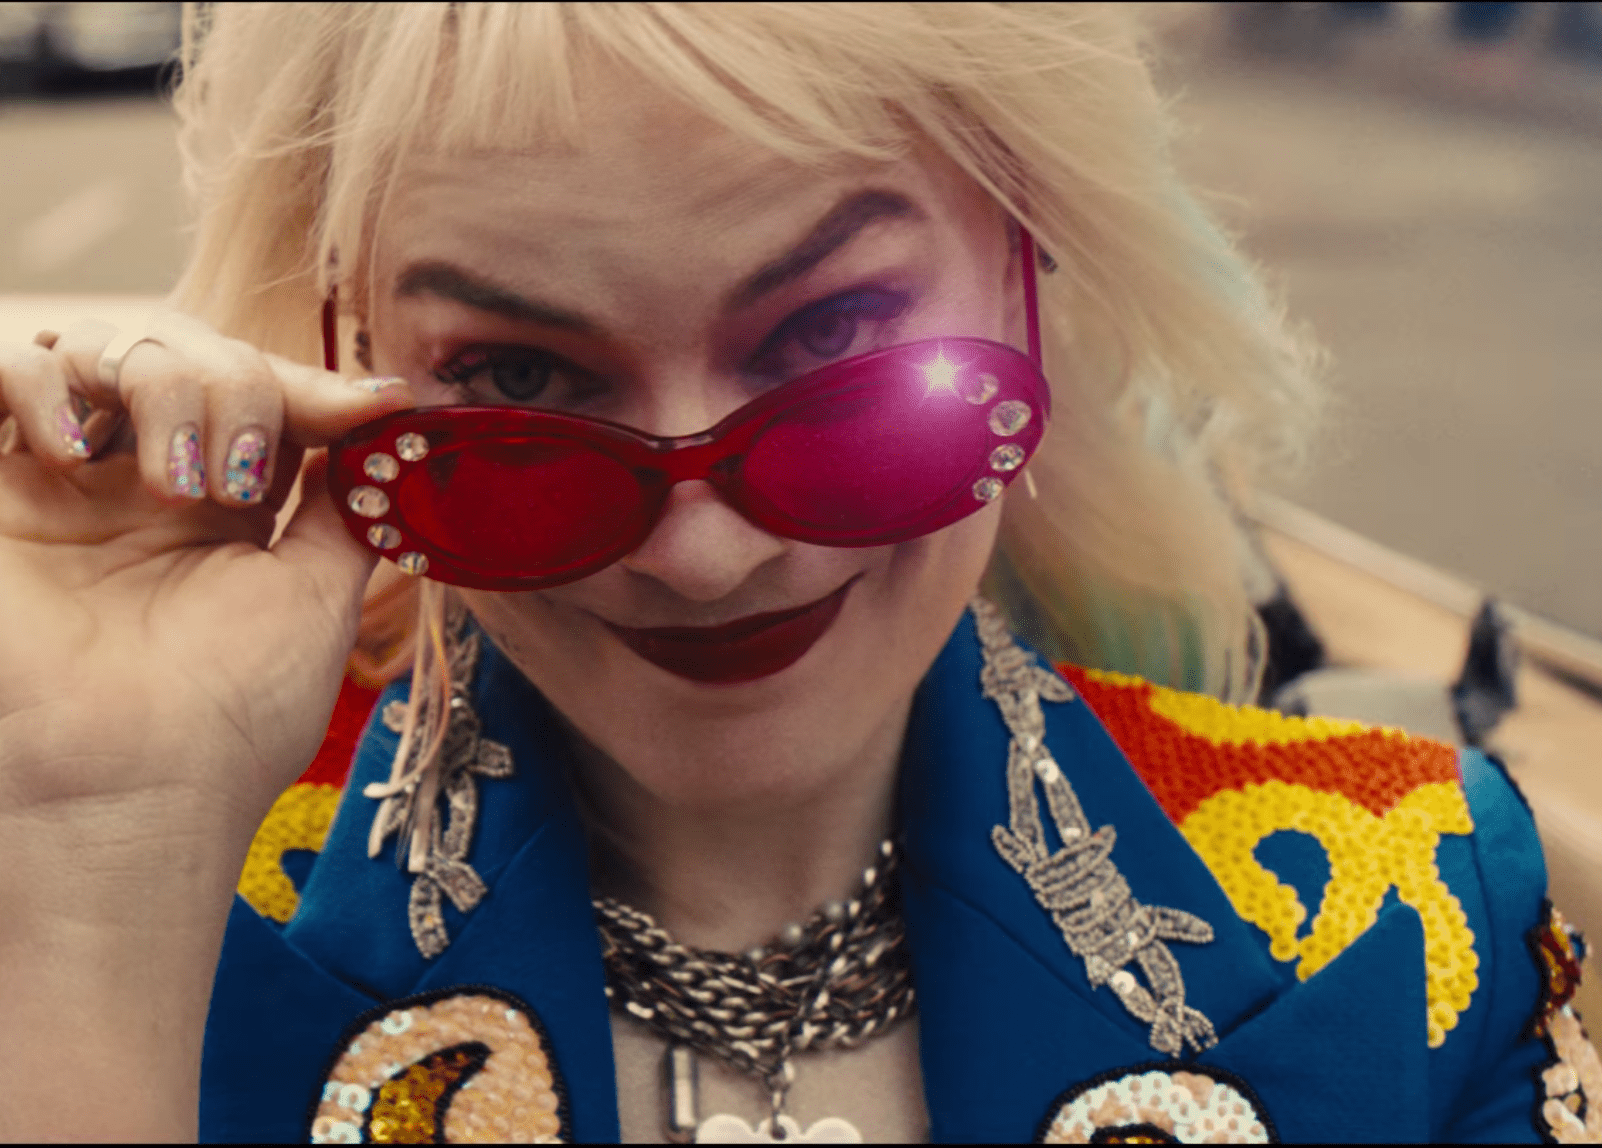 New 'Birds of Prey' Harley Quinn trailer features roller derby and a Hyena named Bruce Wayne